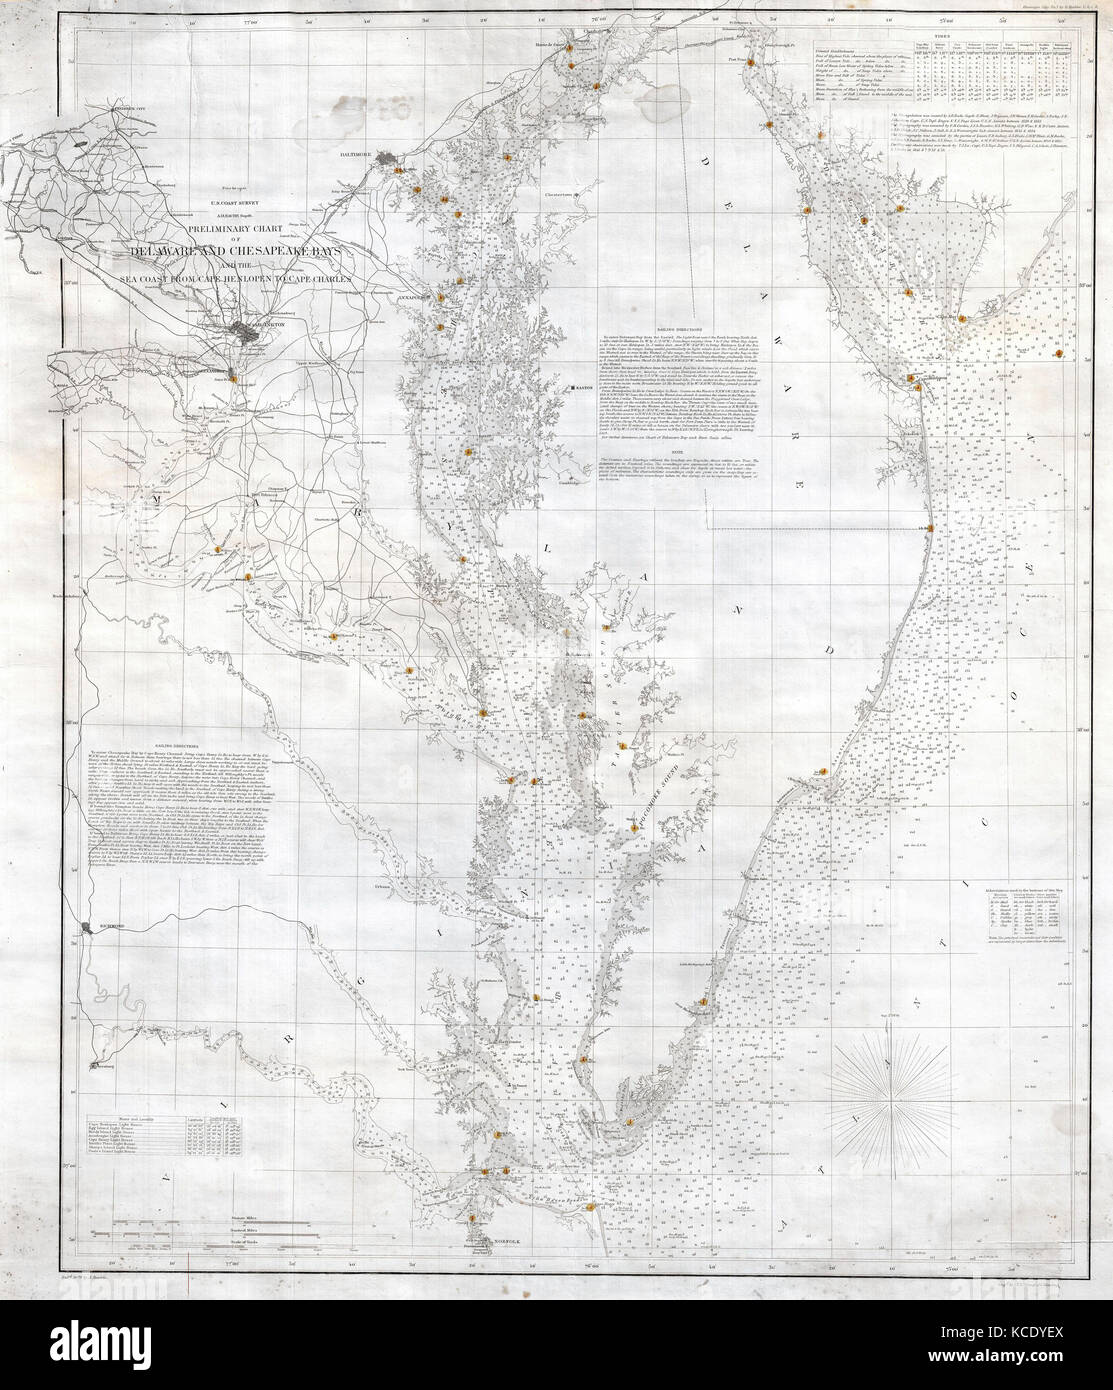 1855 US Coast Survey Nautical Chart or Map of the Chesapeake Bay